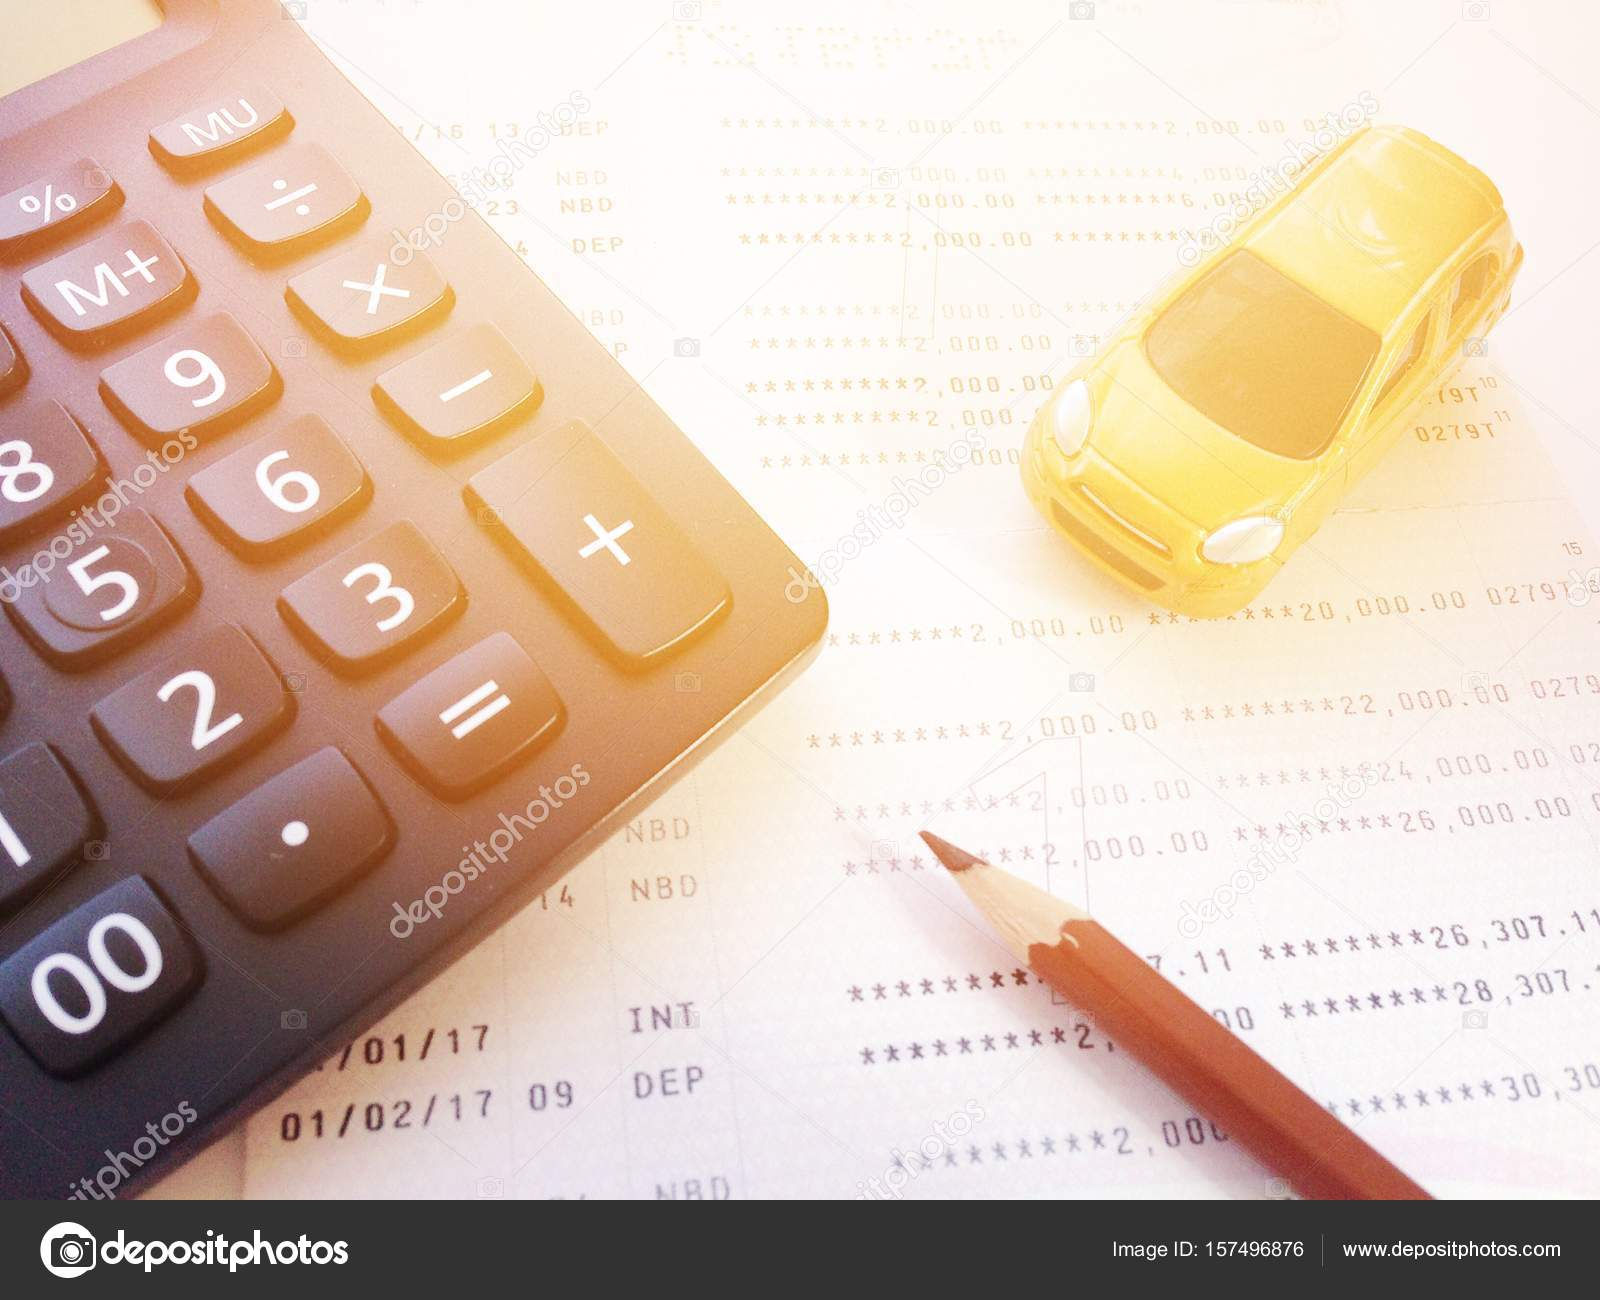 Business, Finance, Savings, Banking Or Car Loan Concept : Miniature Car  Model, Pencil, Calculator And Savings Account Passbook Or Financial  Statement On ...